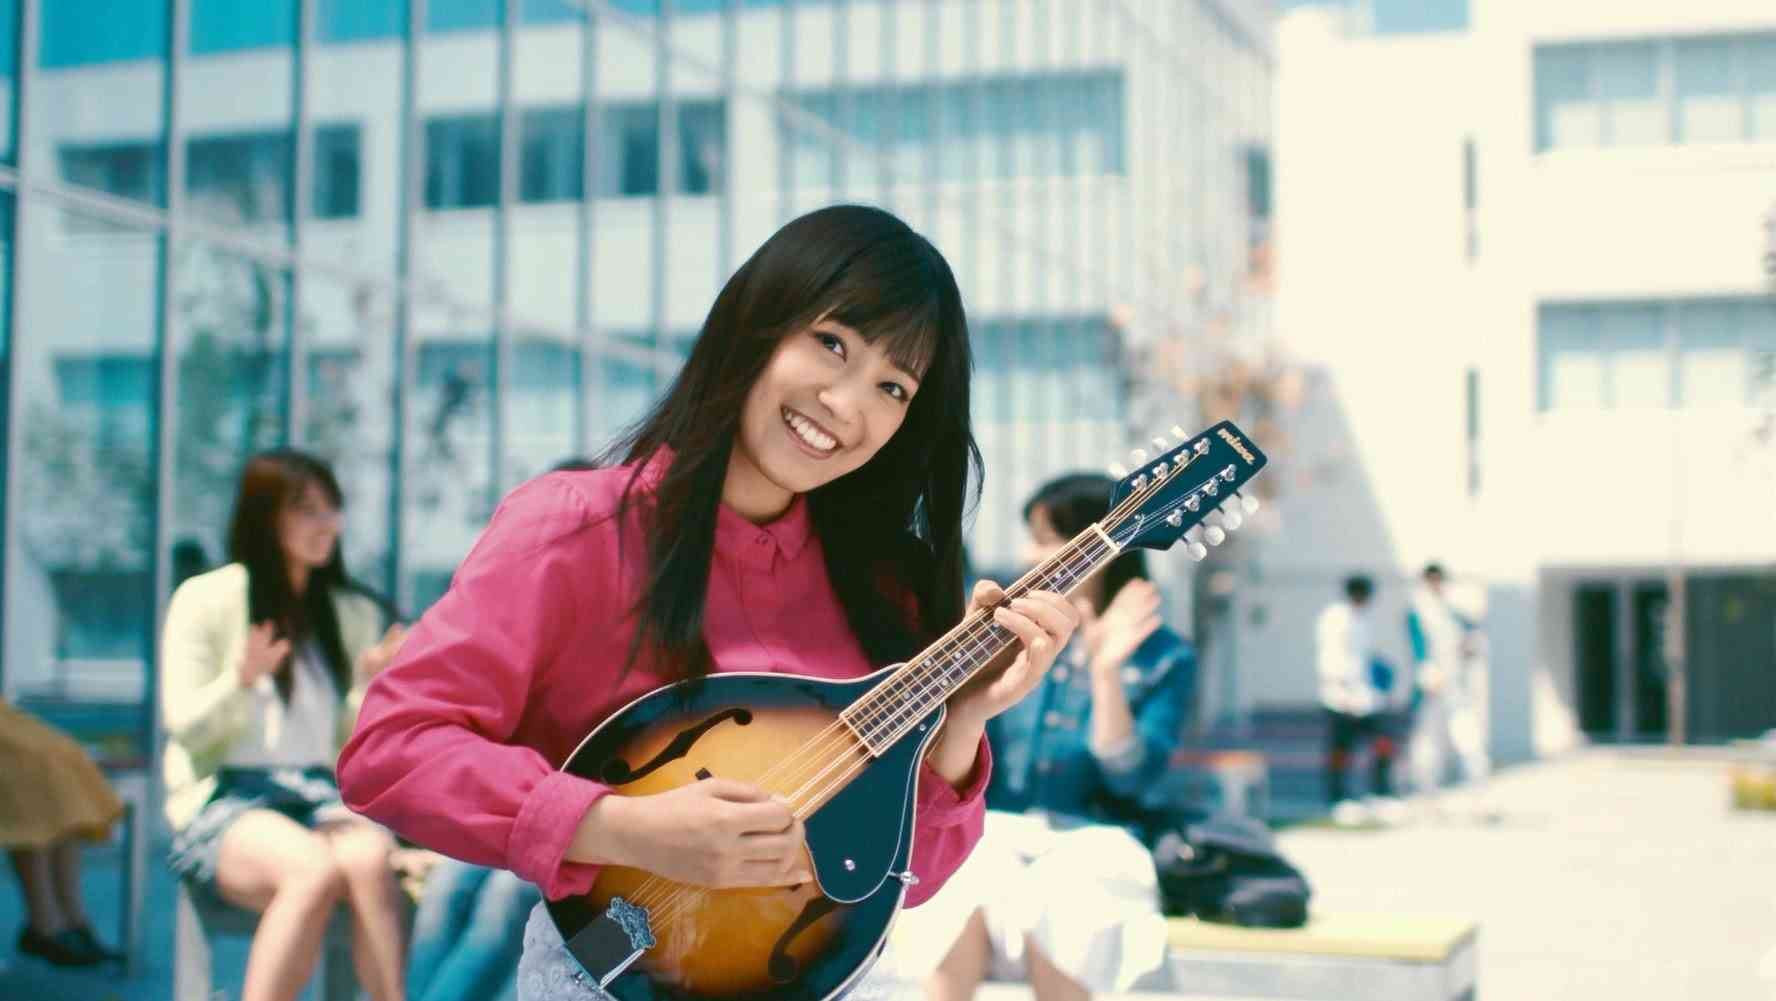 miwa 『Princess』 - YouTube